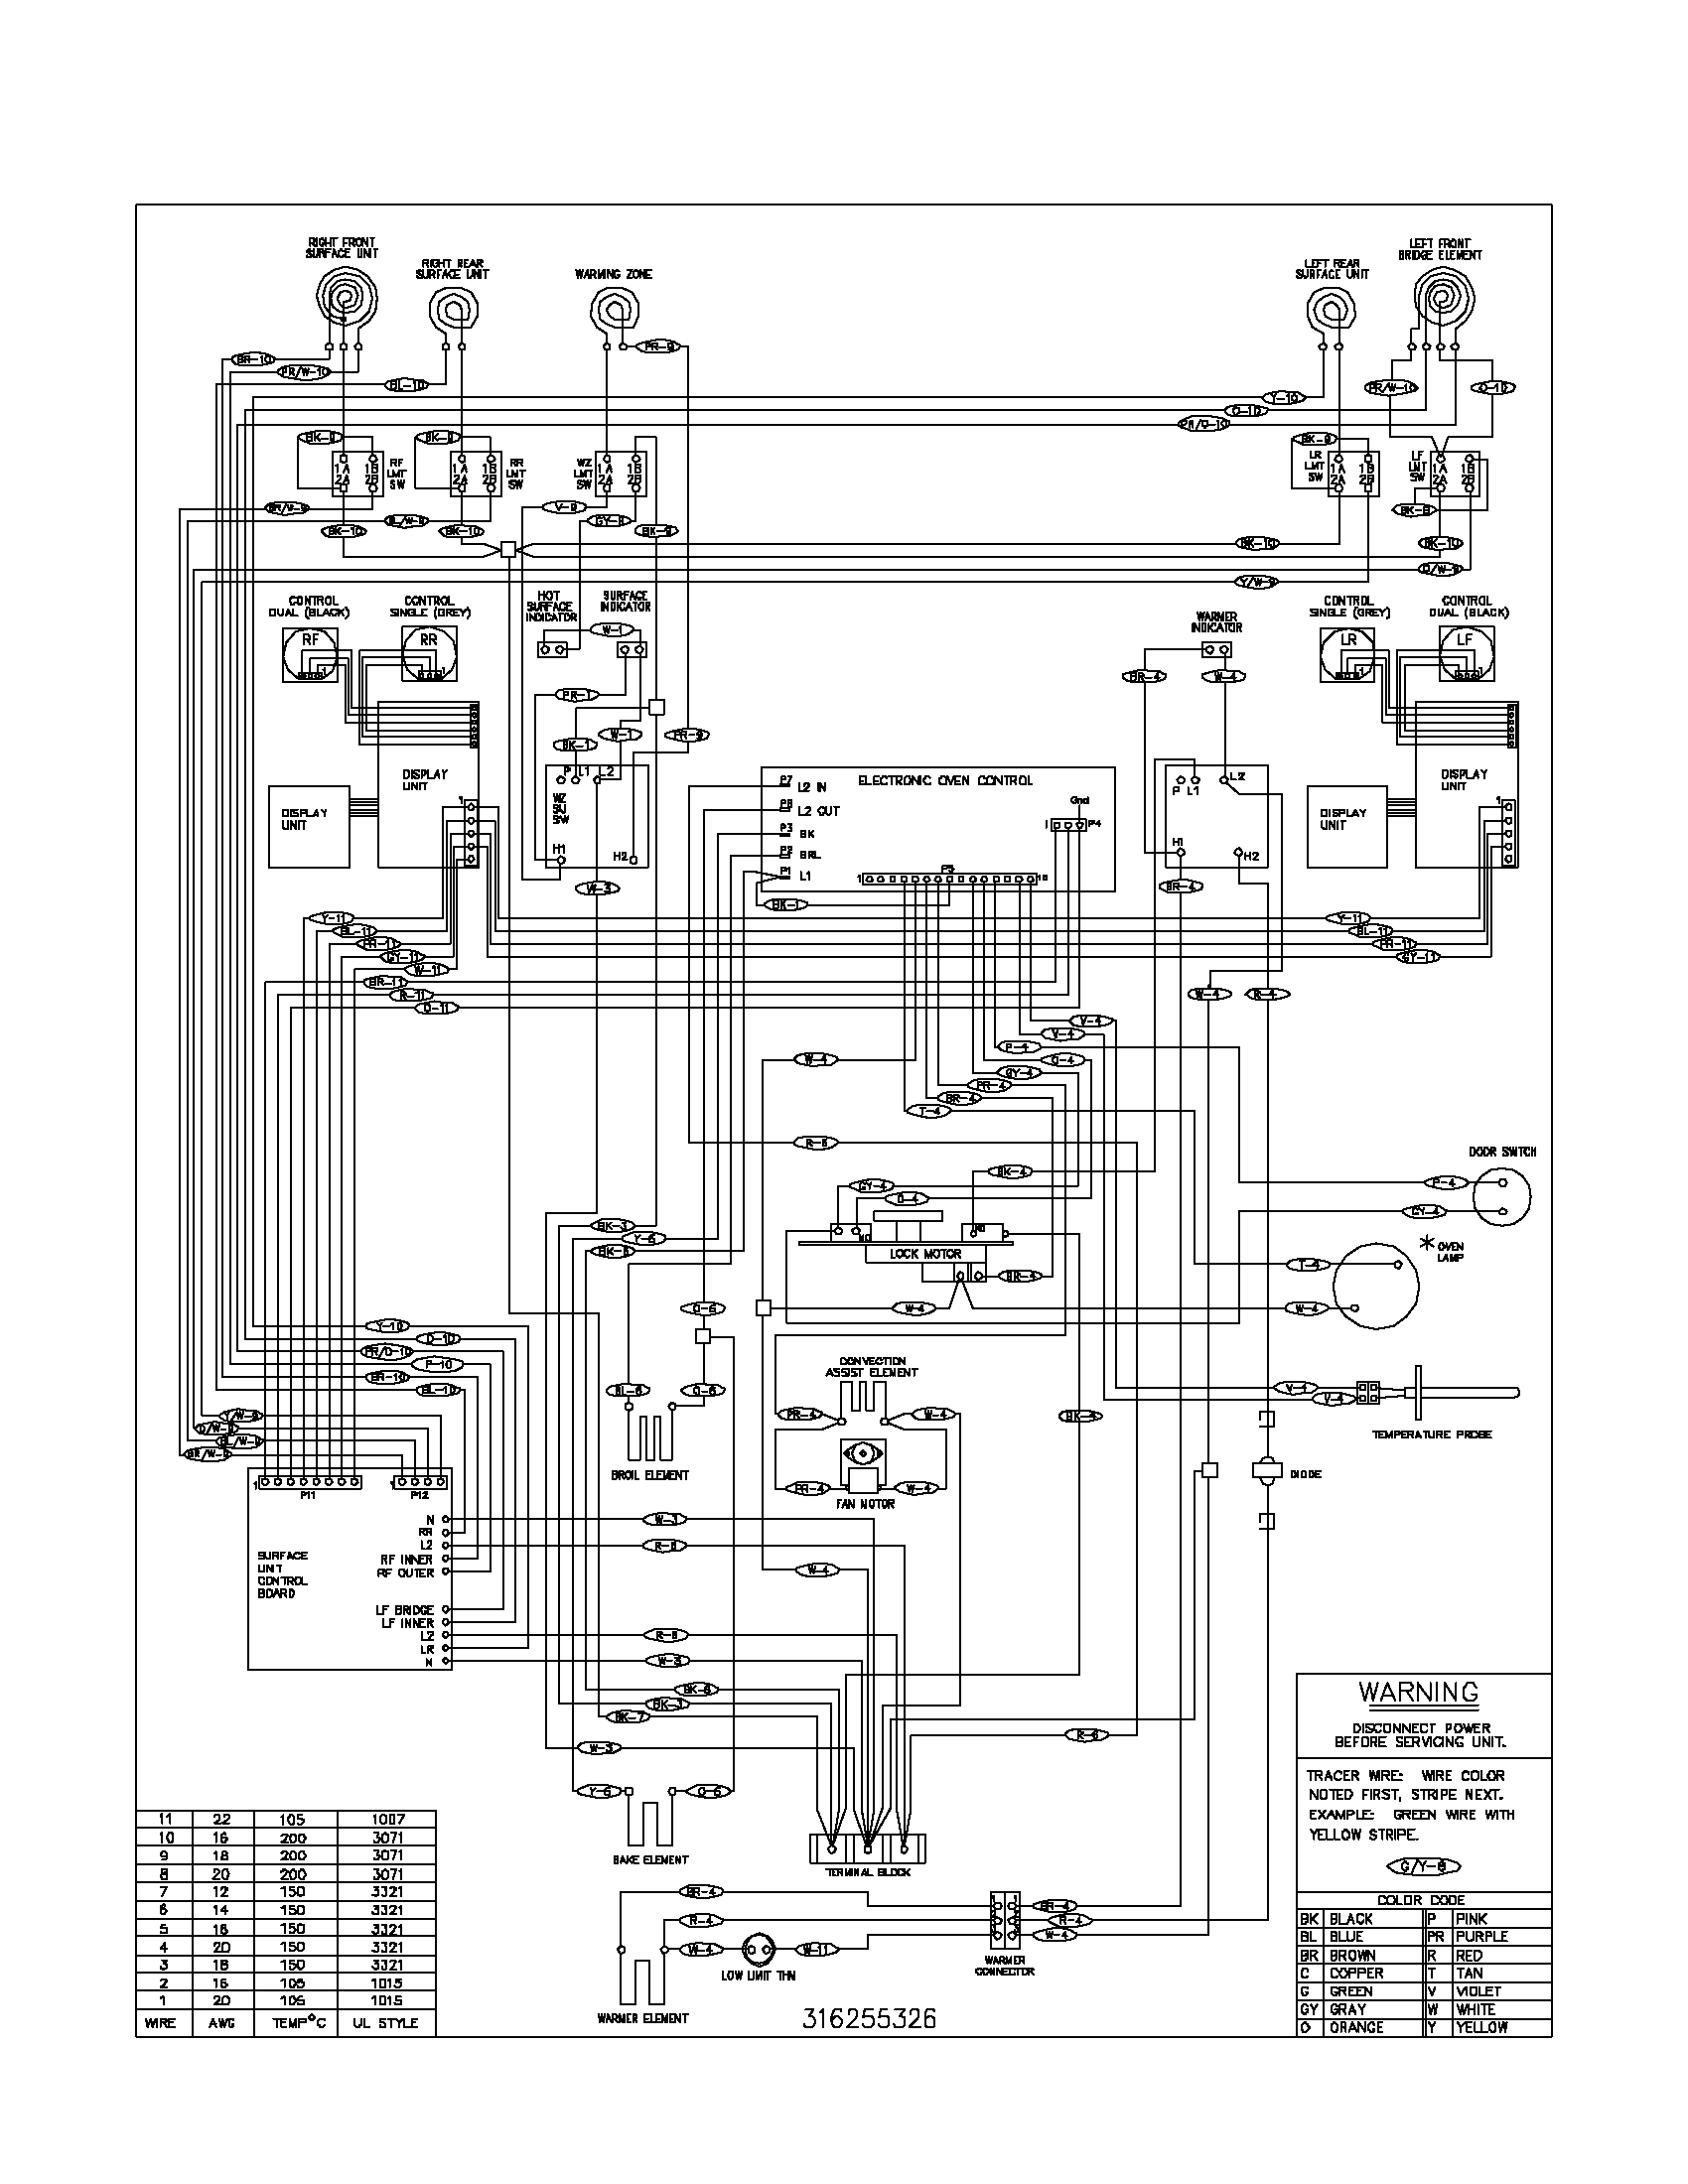 hight resolution of wiring diagram for frigidaire stove wiring diagram todays frigidaire dishwasher schematic diagram frigidaire oven wiring diagram